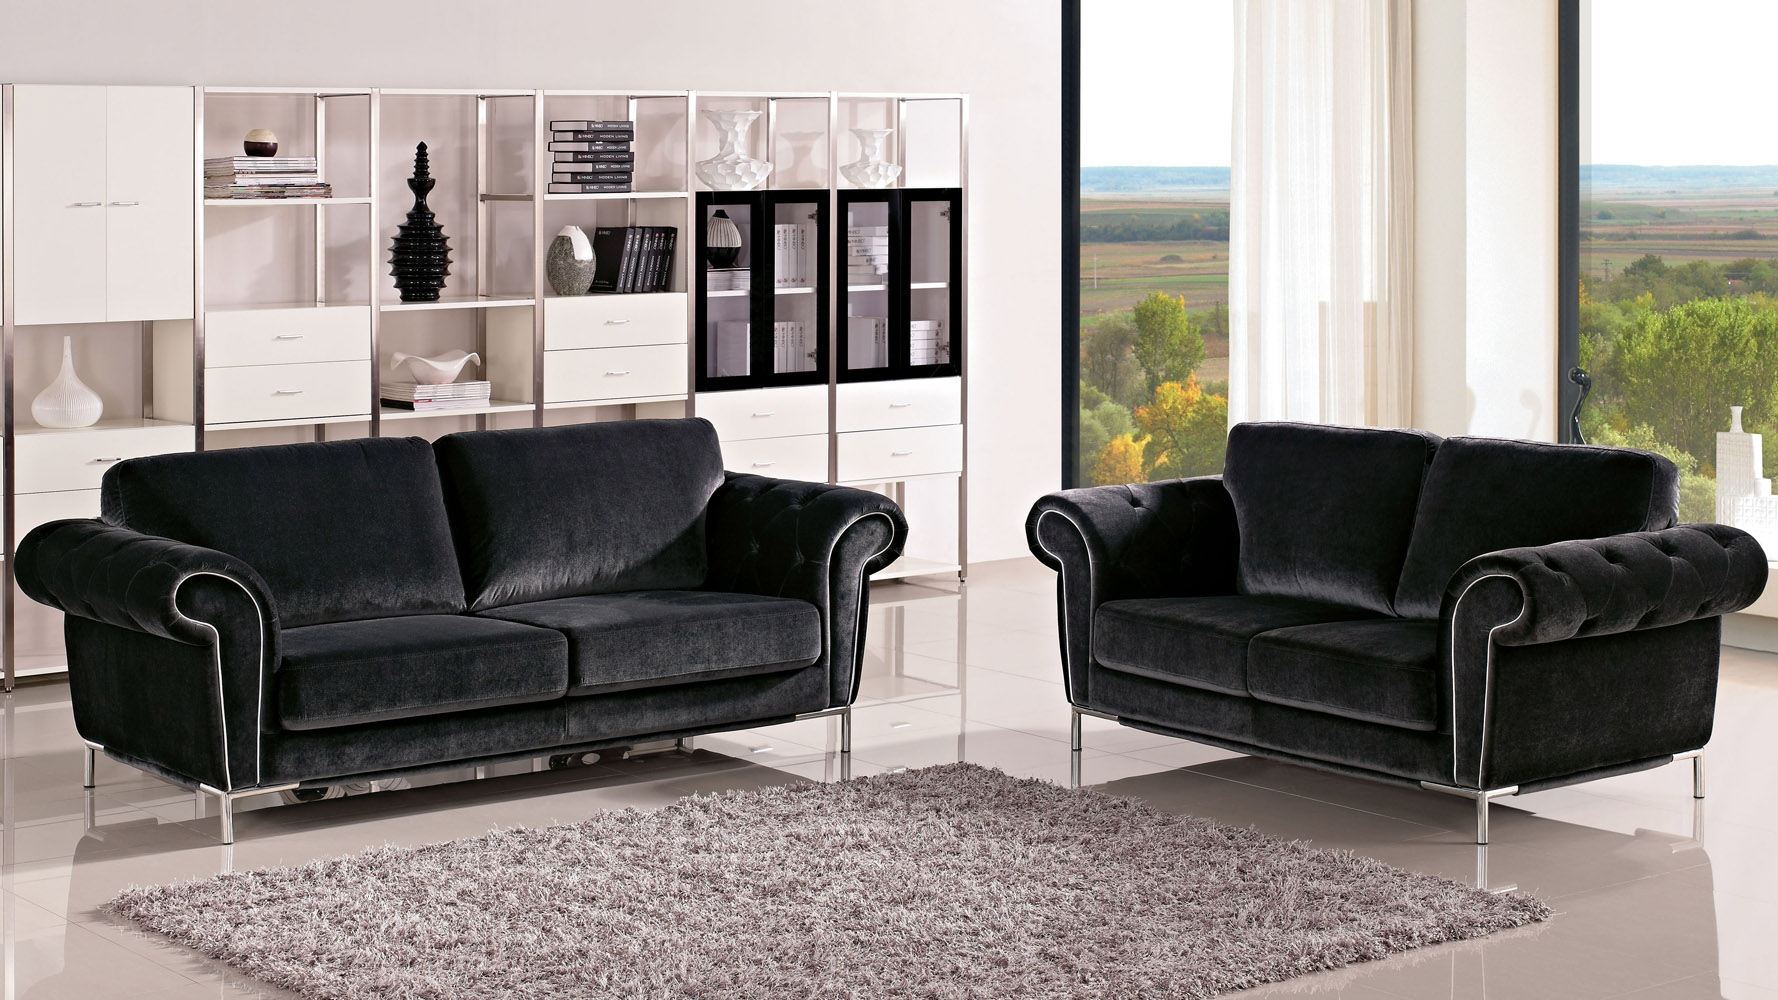 Modern Sofas Contemporary Sofas Modern Living Room Furniture Intended For Contemporary Sofas And Chairs (Image 11 of 15)